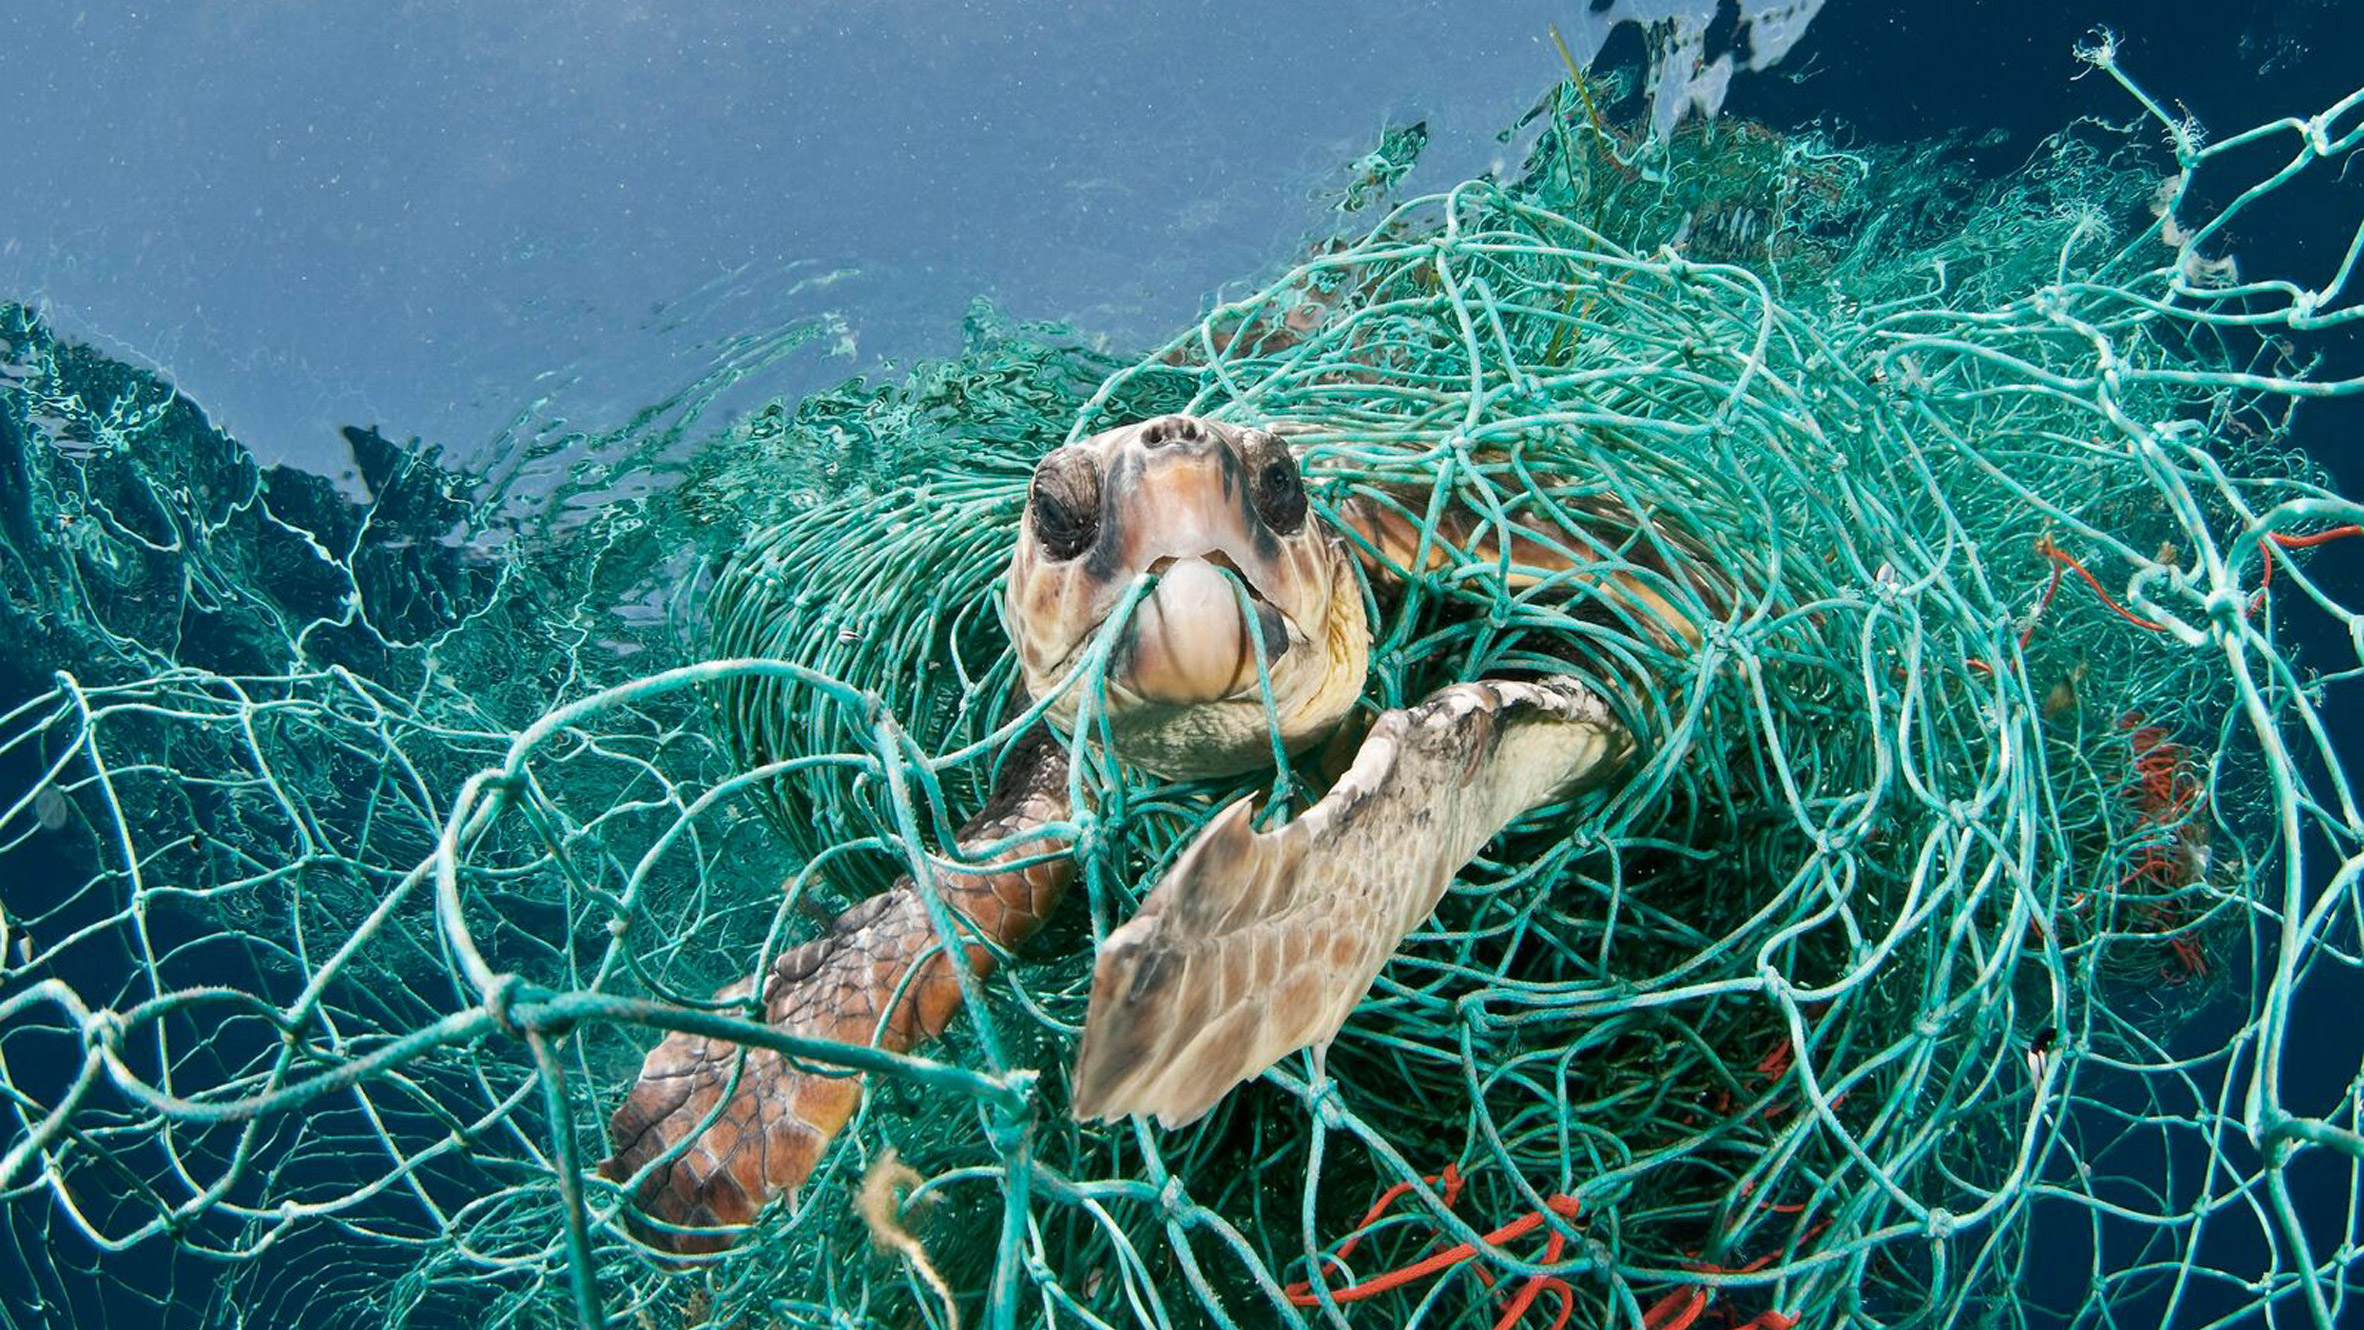 I don't believe we're going to clean up the oceans